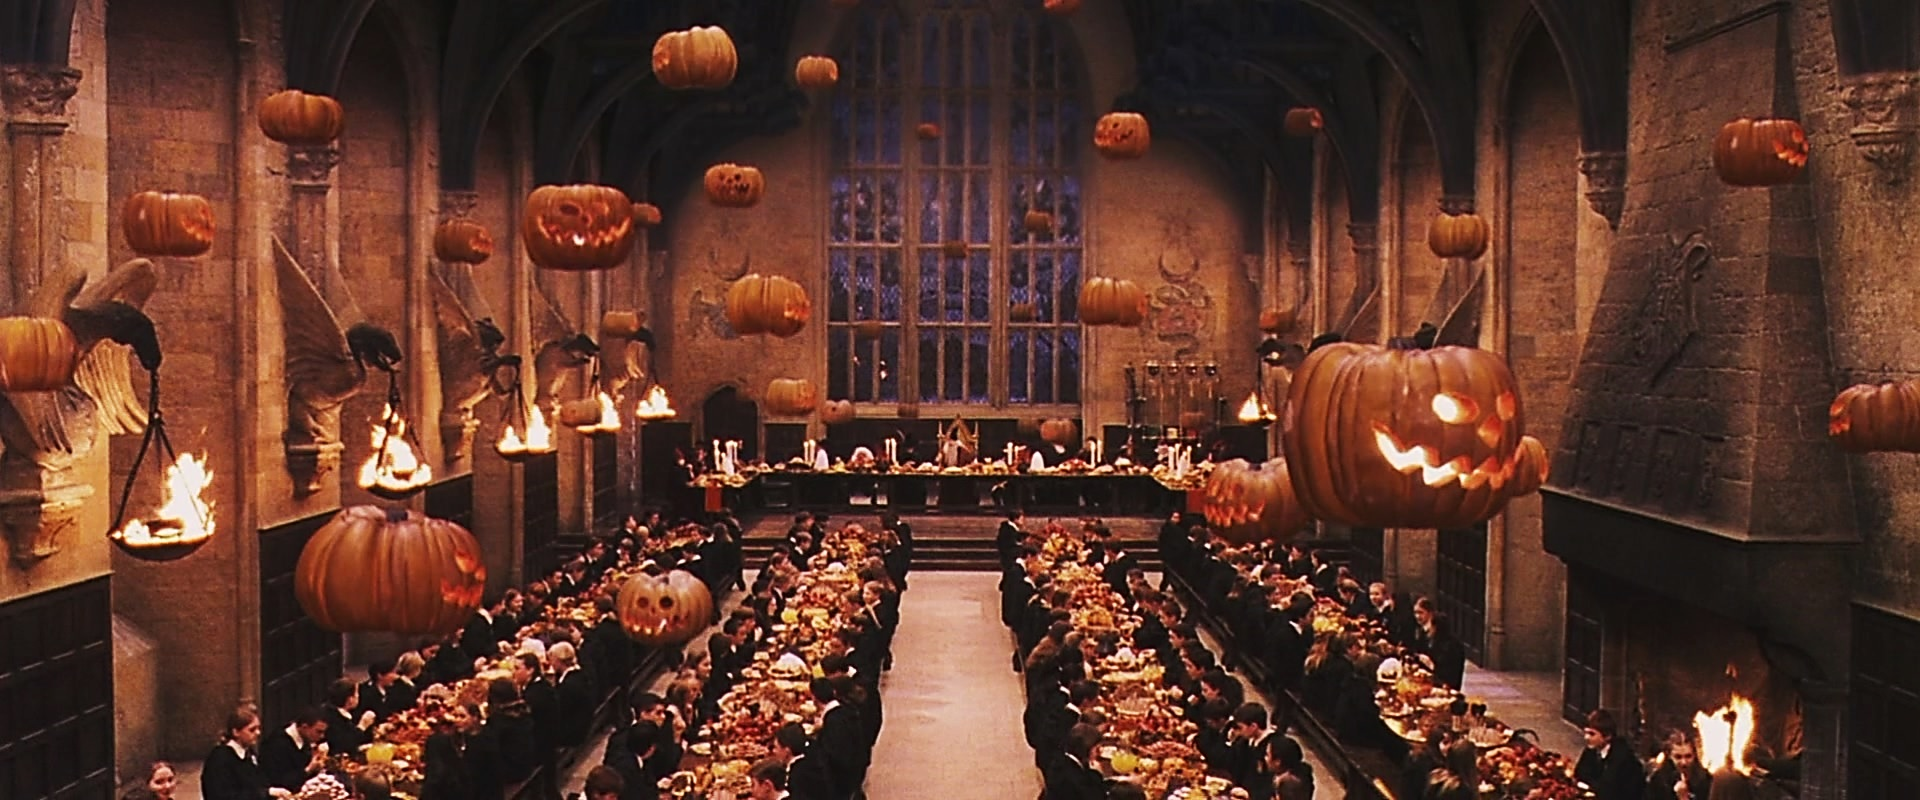 decorations - Hogwarts Halloween